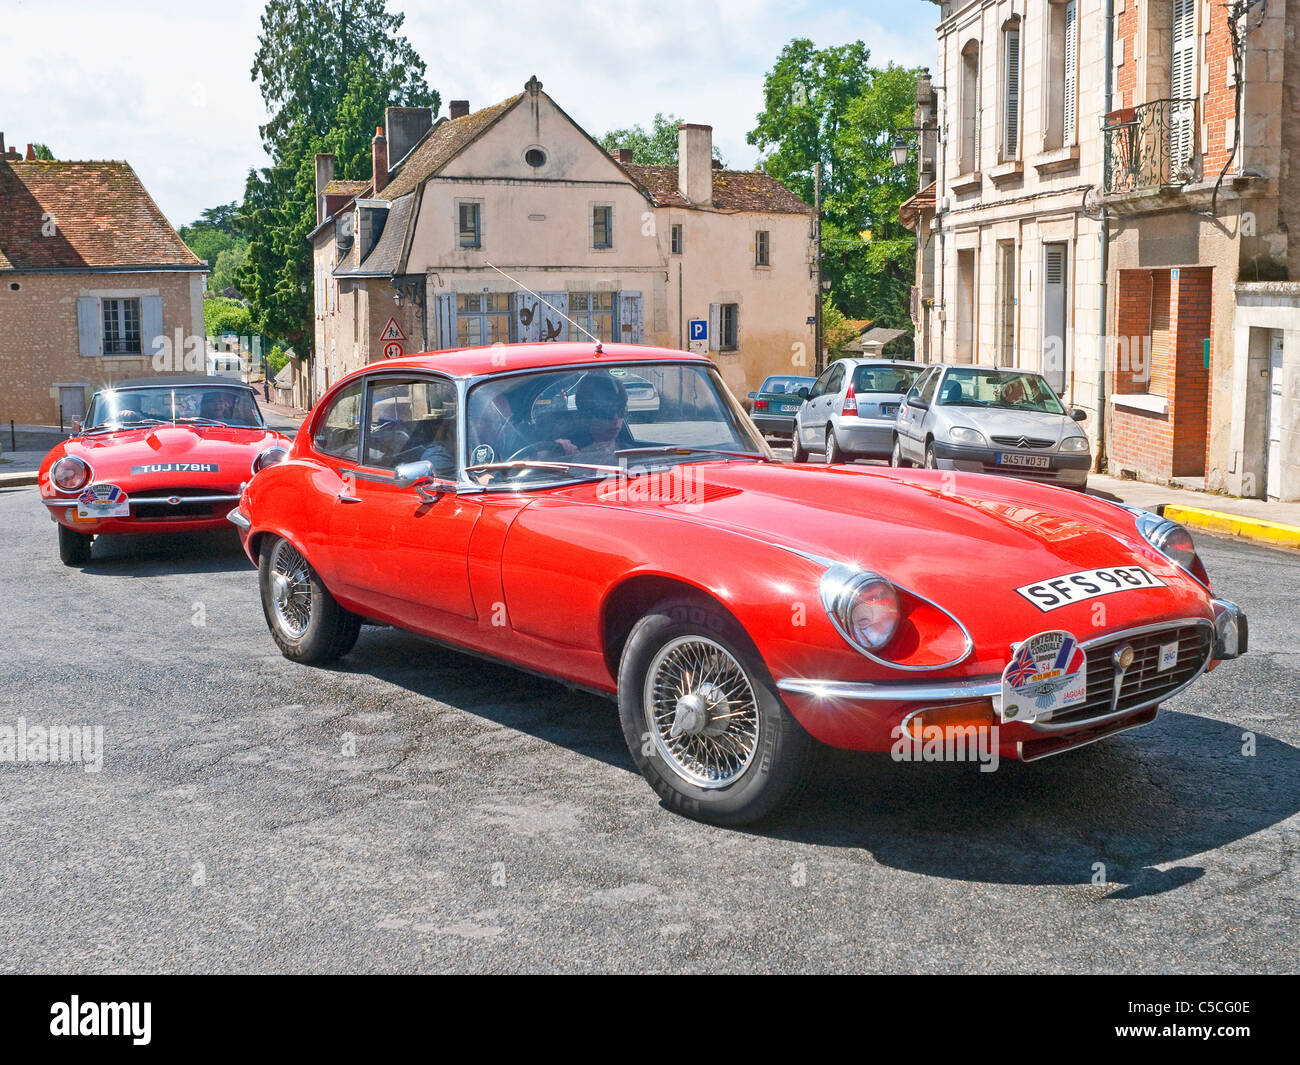 Two red E-Type Jaguar sports cars in town - France. - Stock Image